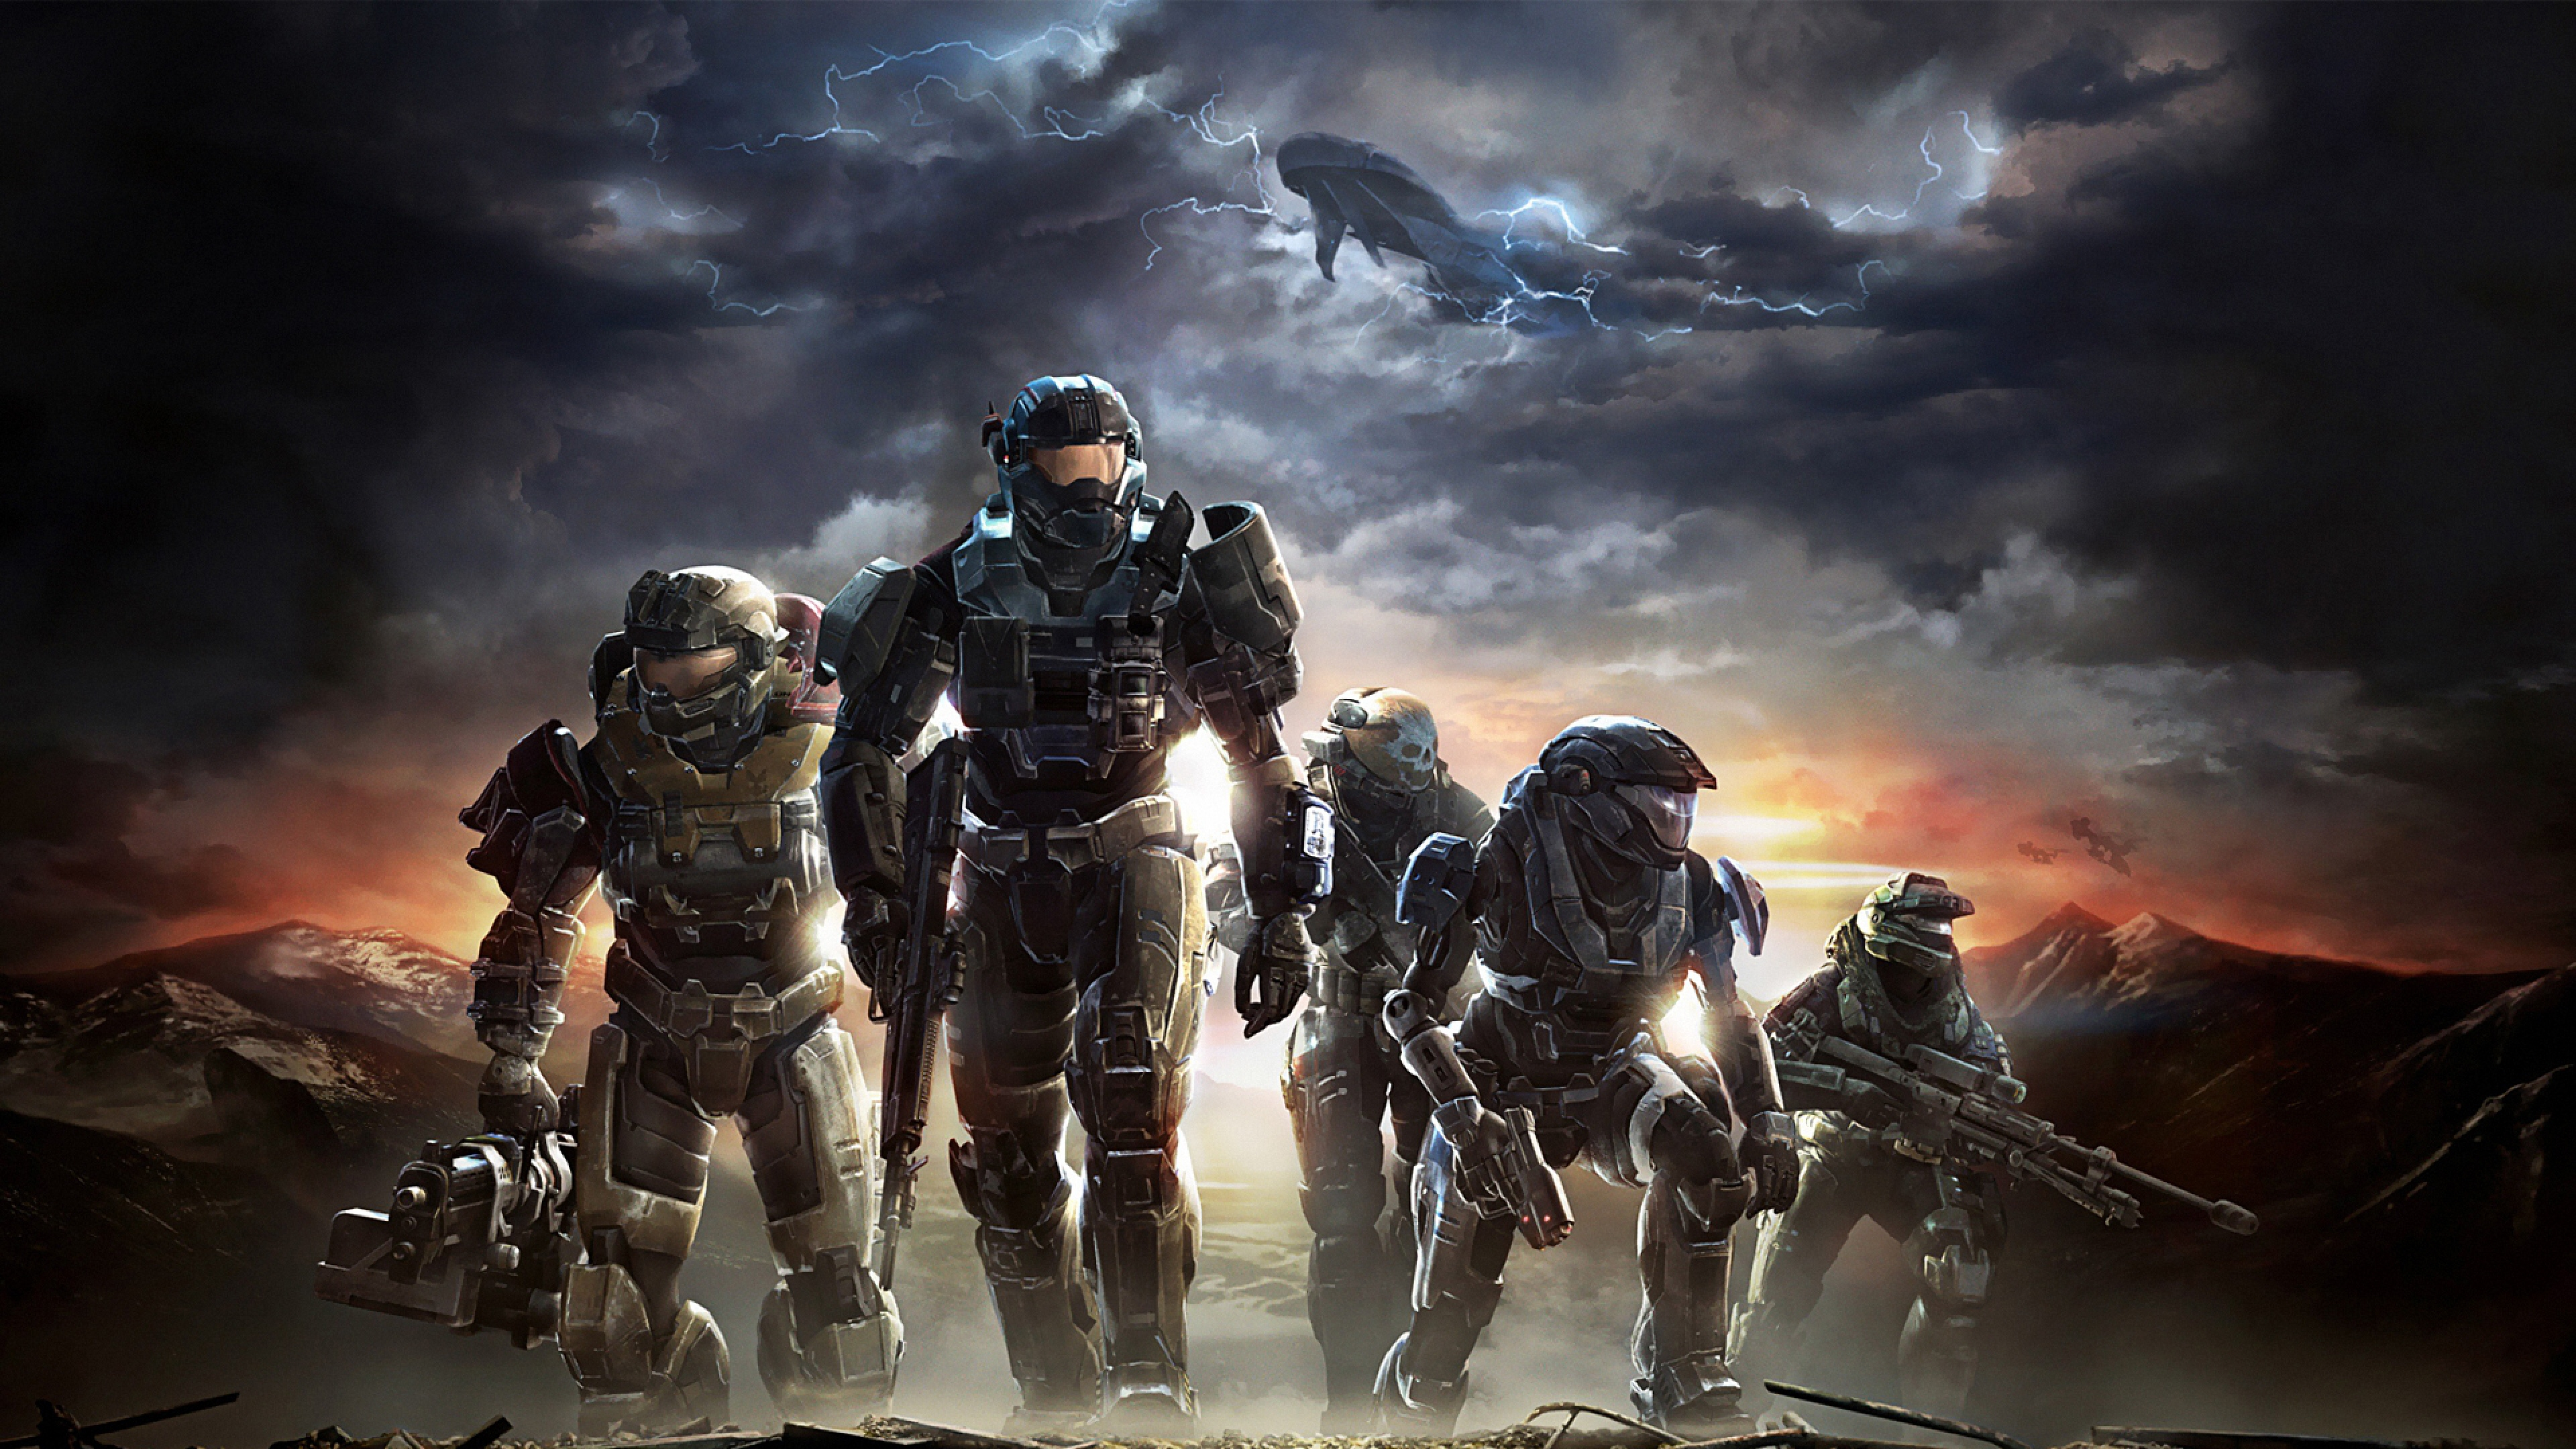 Download Wallpaper 3840x2160 halo soldiers sky clouds mountains 4K 3840x2160